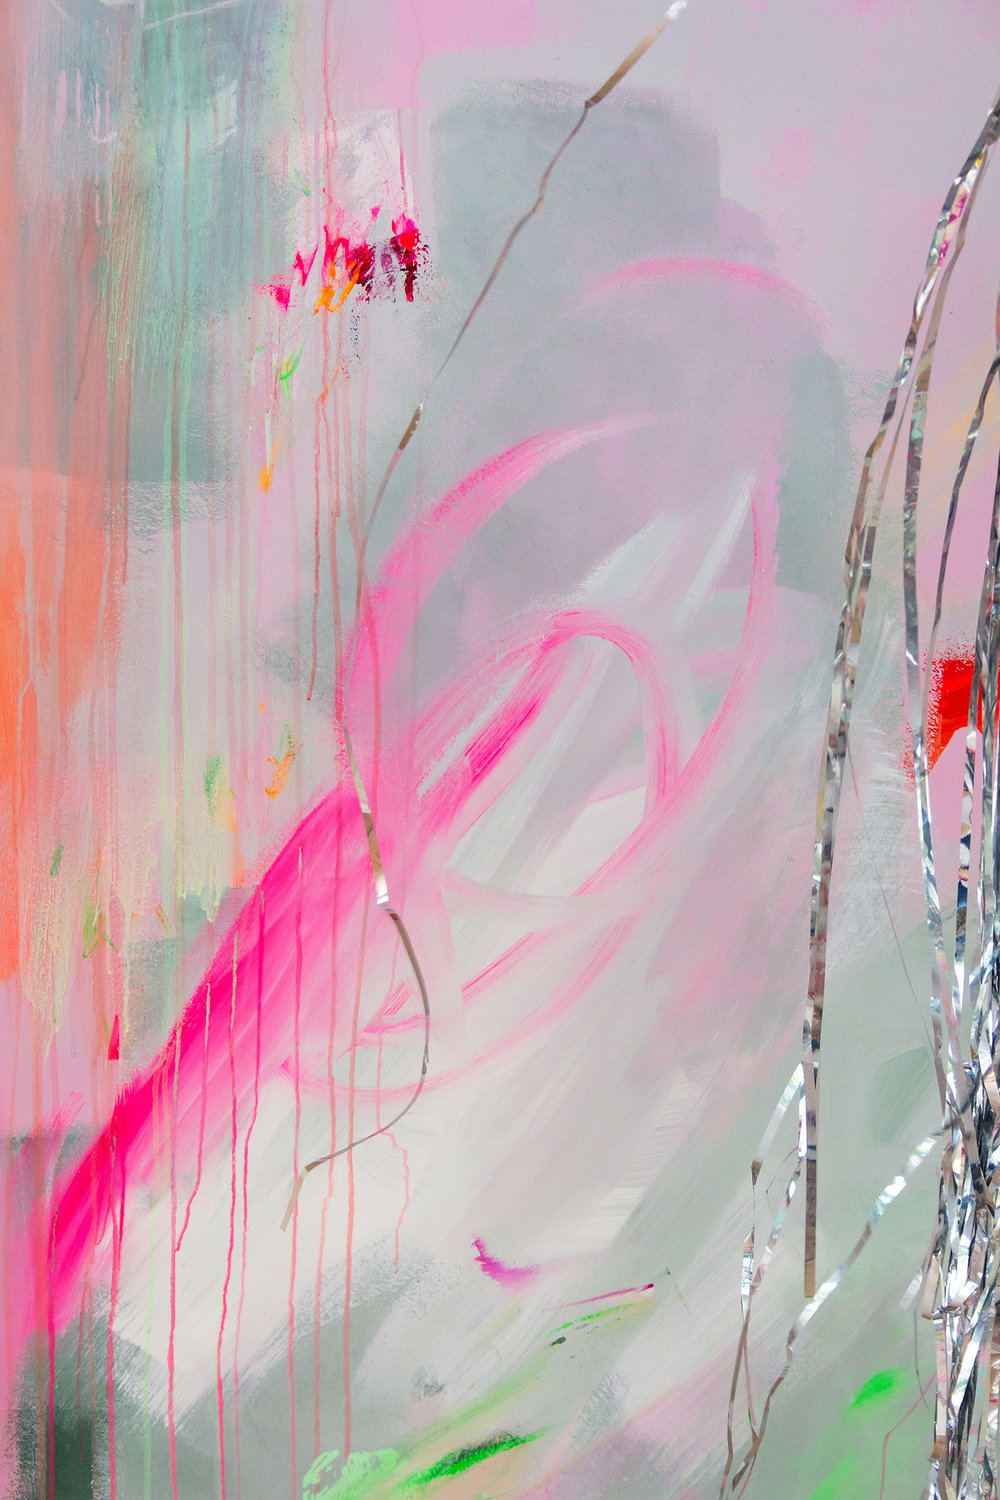 Vibrant abstract mural in pink and pastel colours. A silver metallic curtain peeks out from the side of the image.